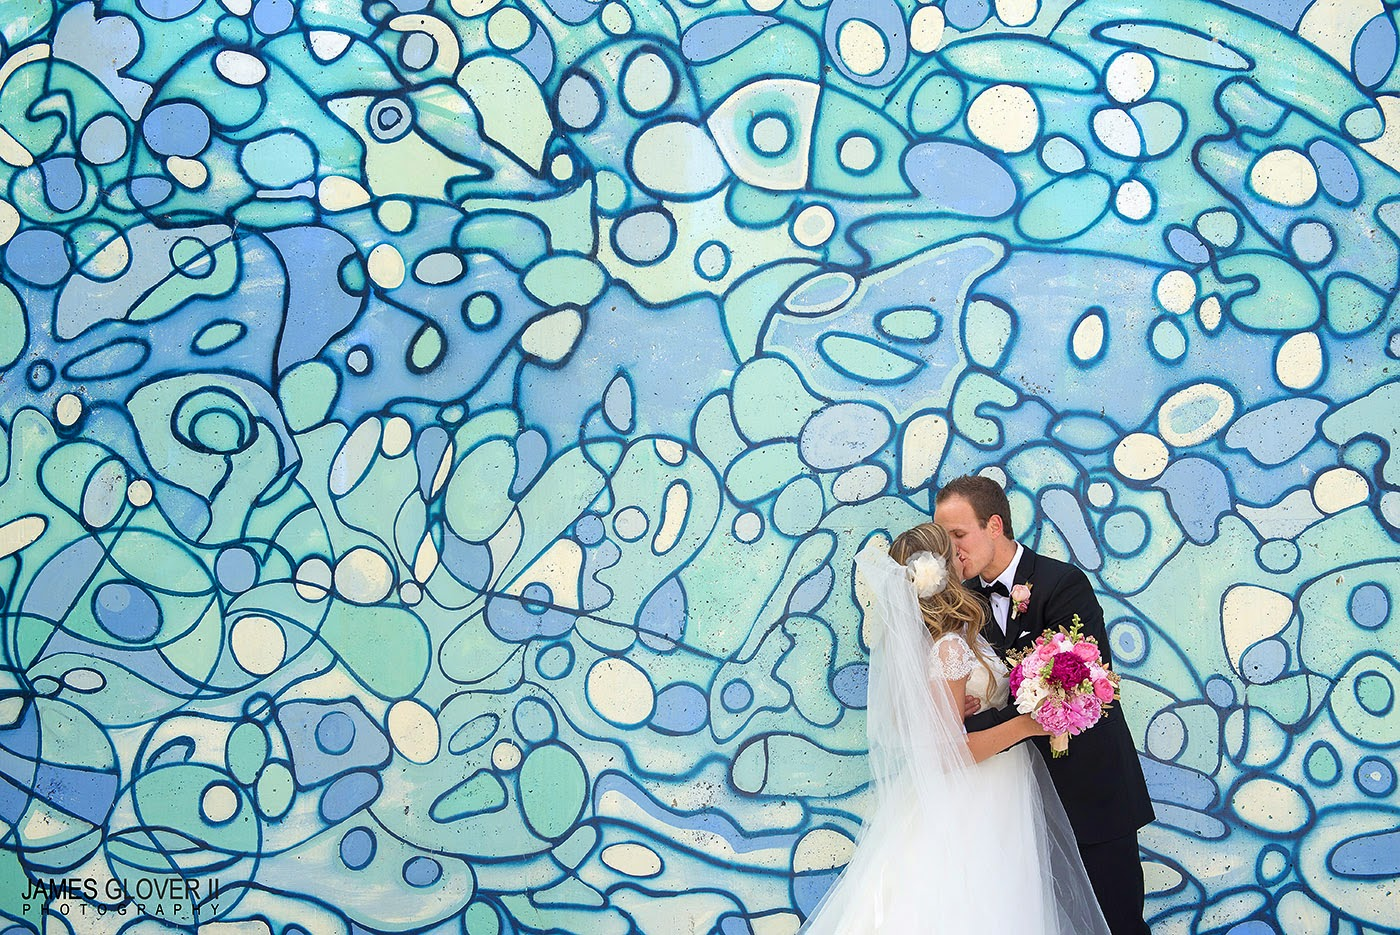 Reno mural wedding photo // James Glover Photography // Take the Cake Event Planning